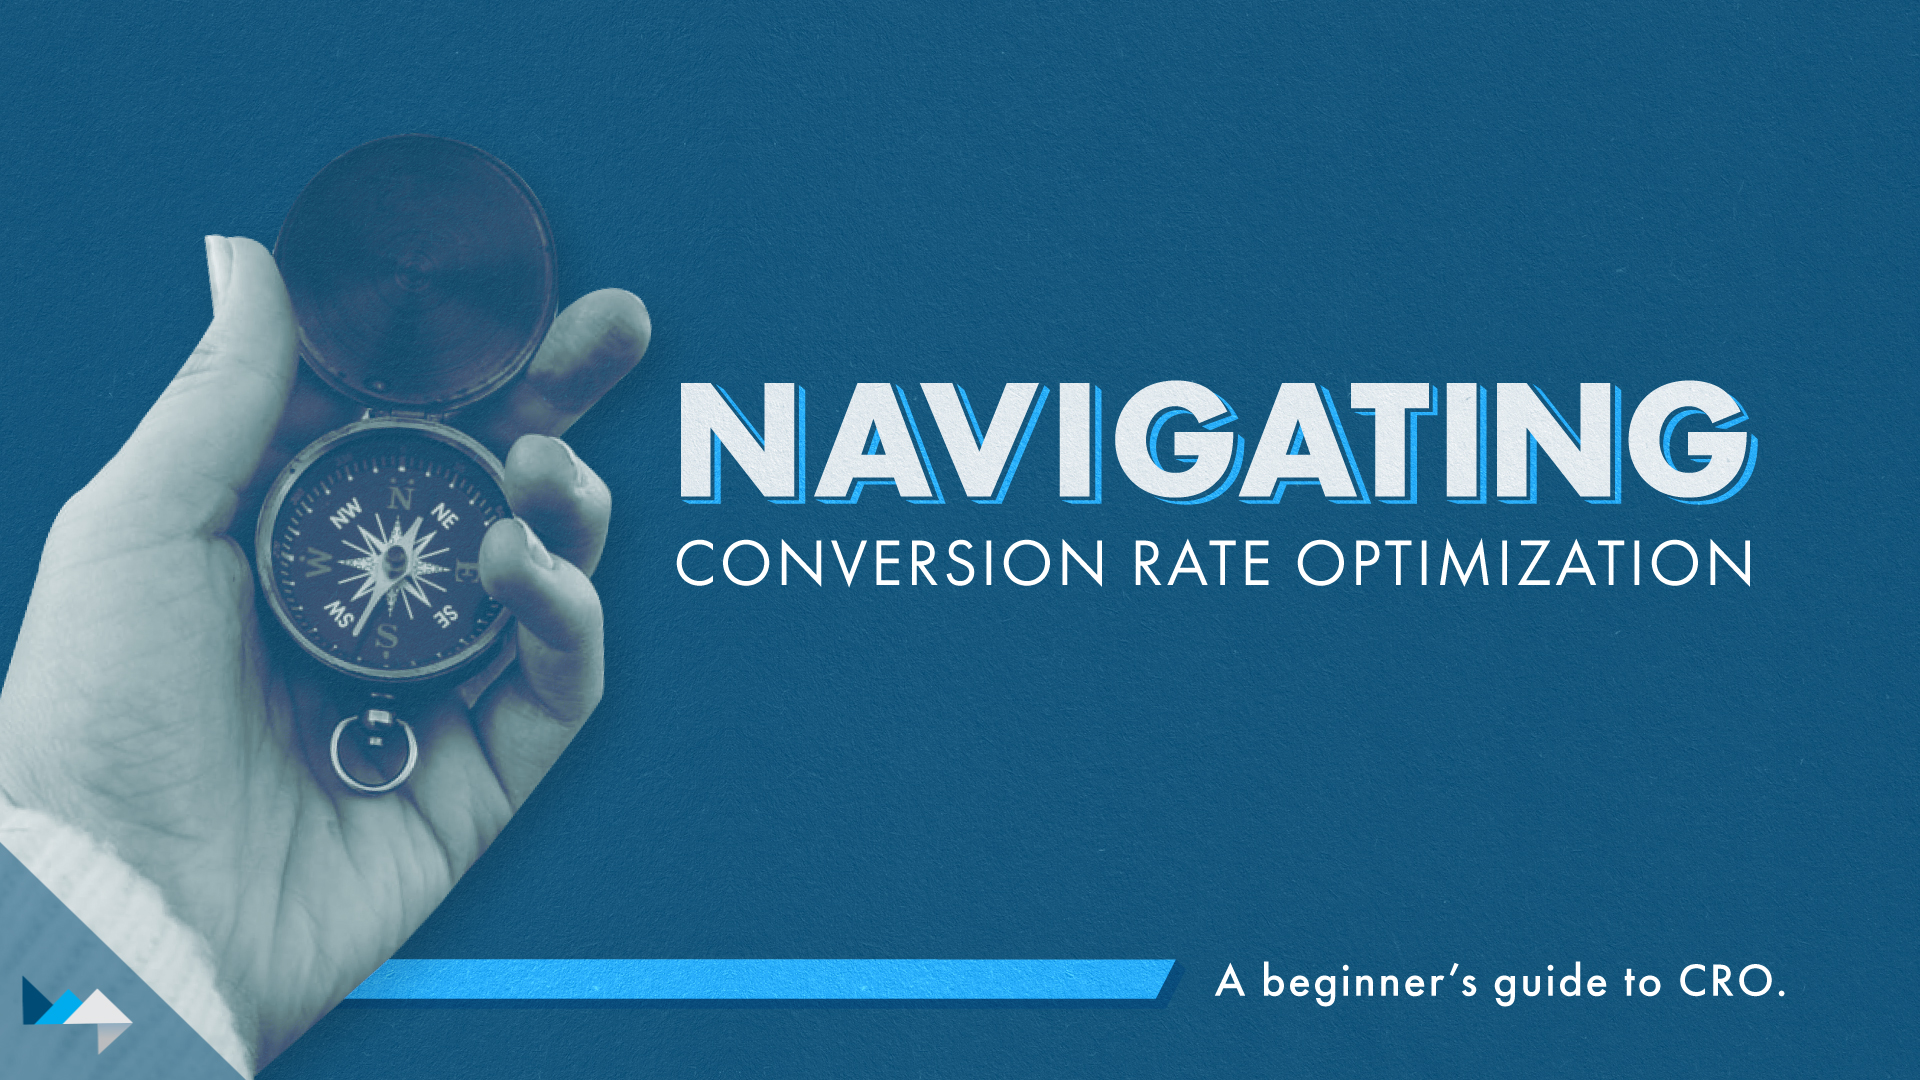 Navigating Conversion Rate Optimization. A beginner's guide to CRO.